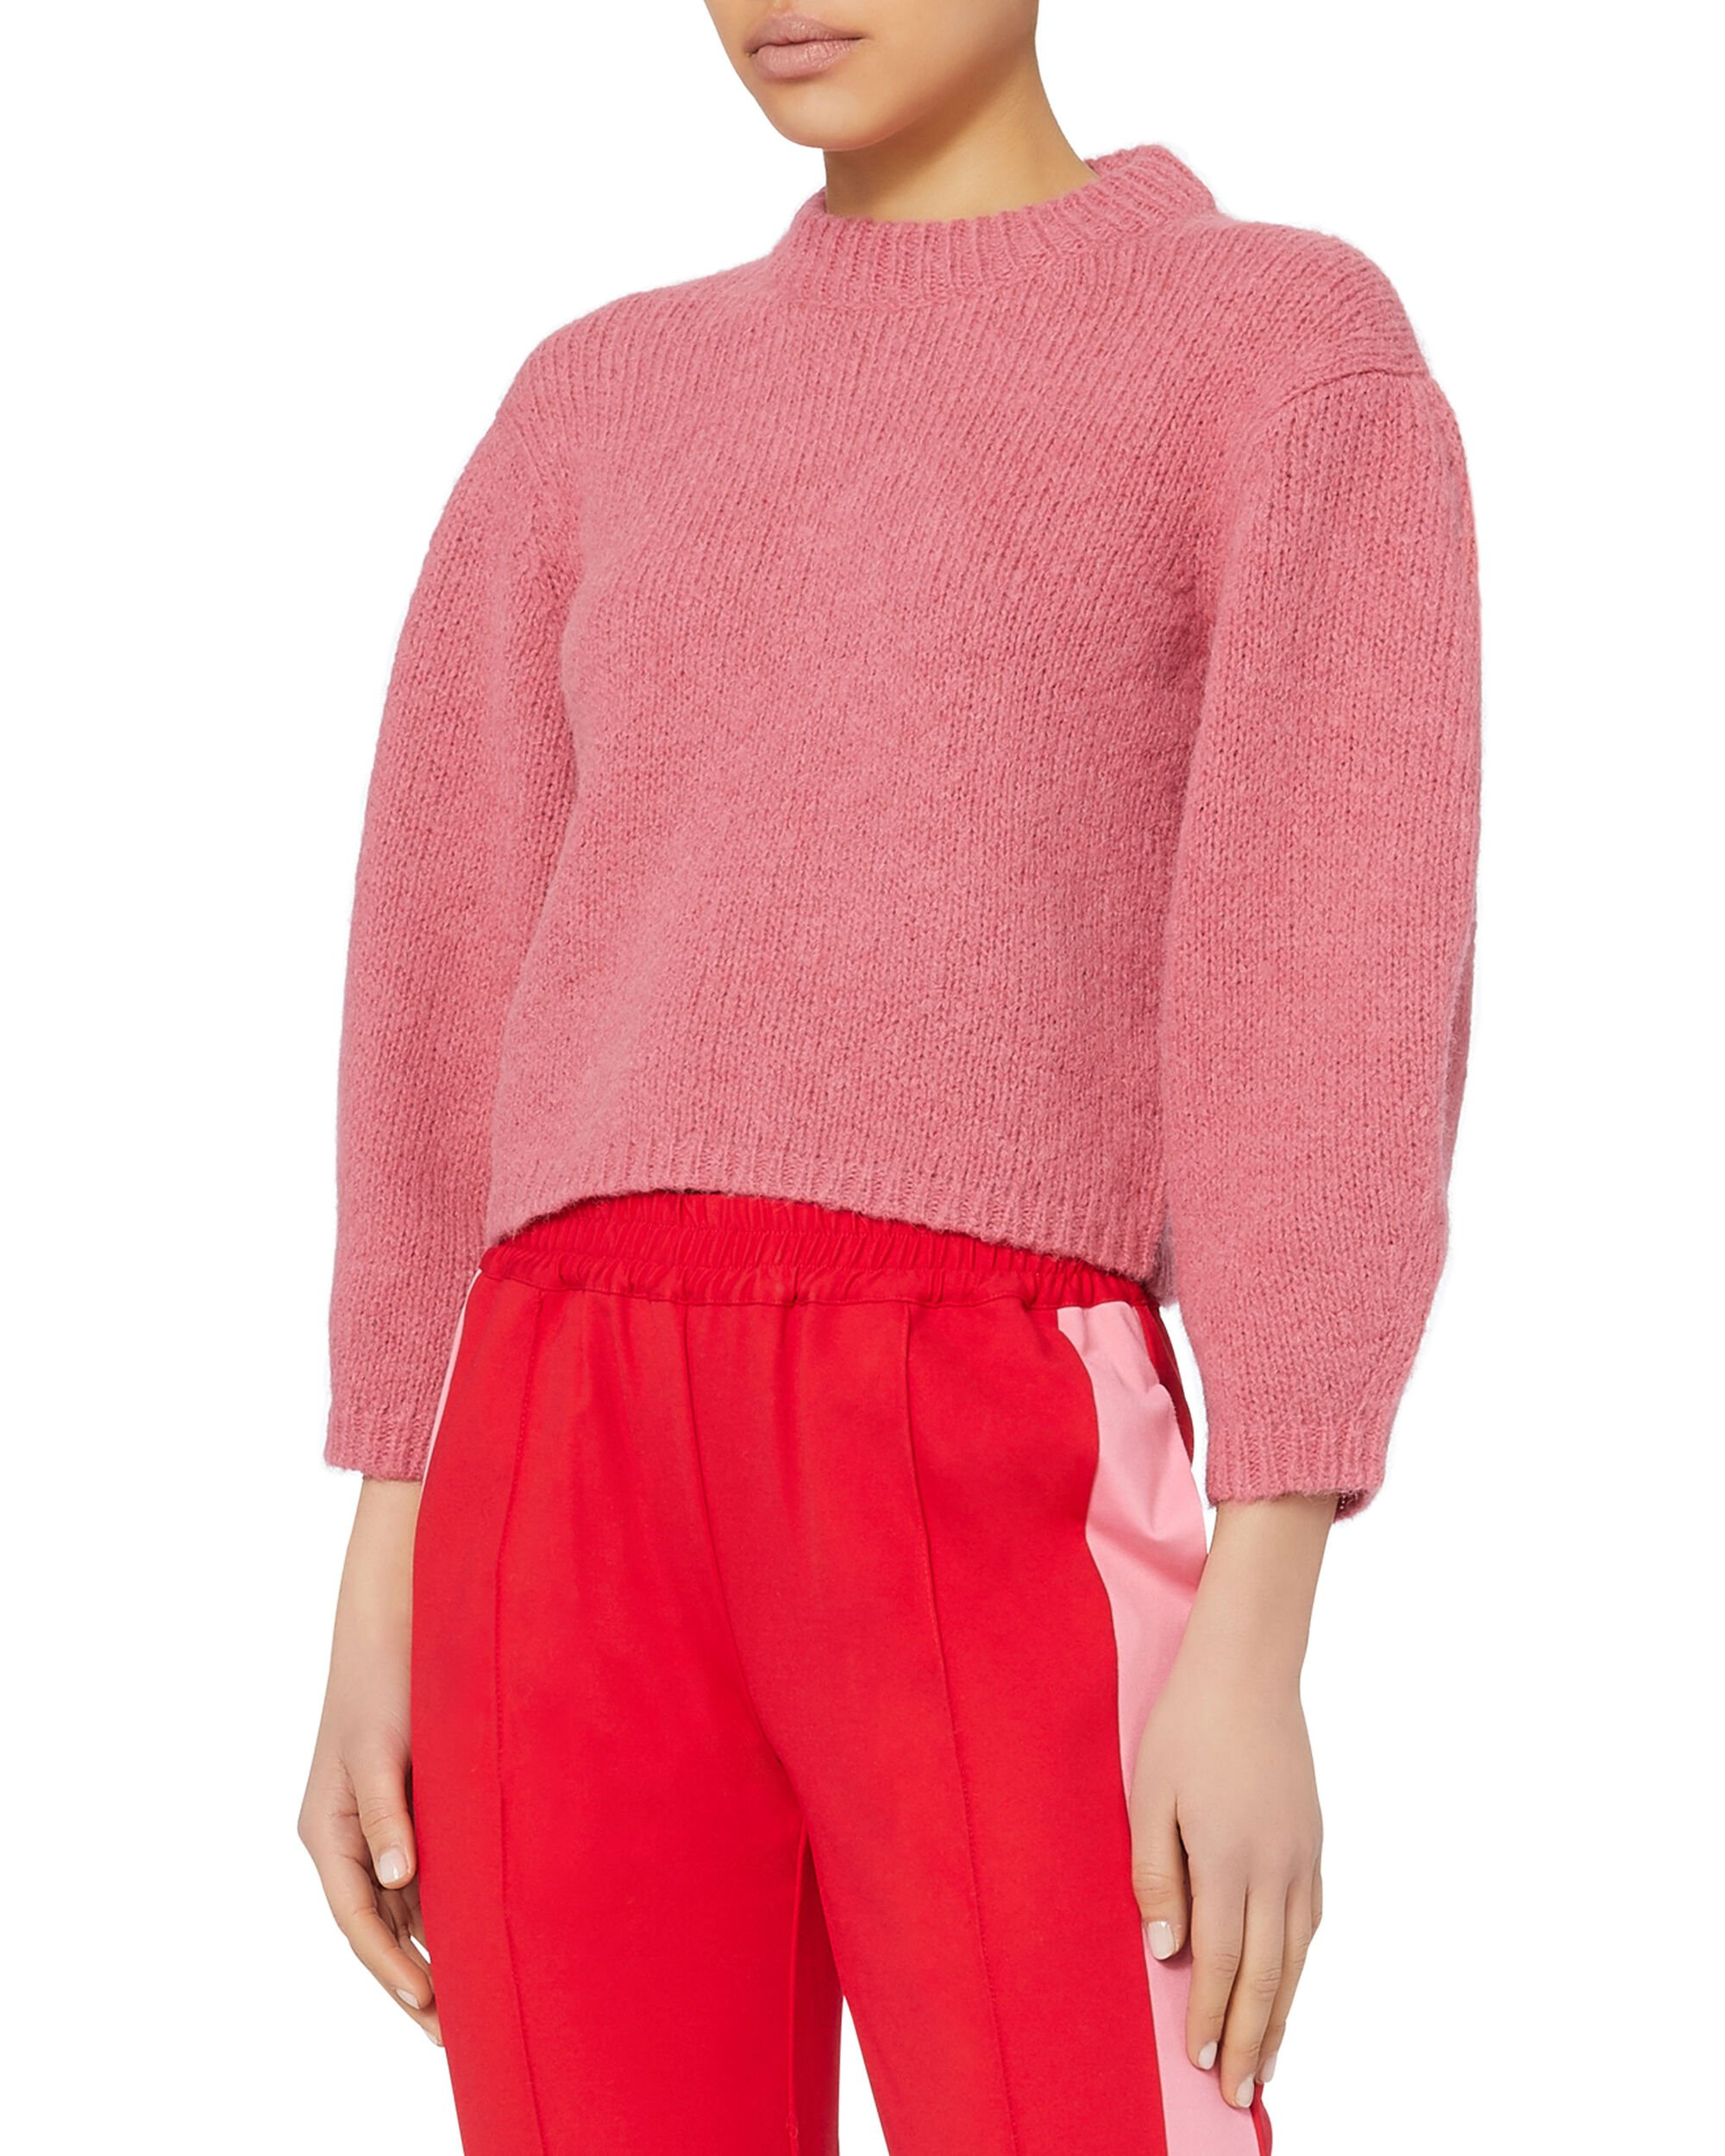 Cozette Cropped Pullover, PINK, hi-res